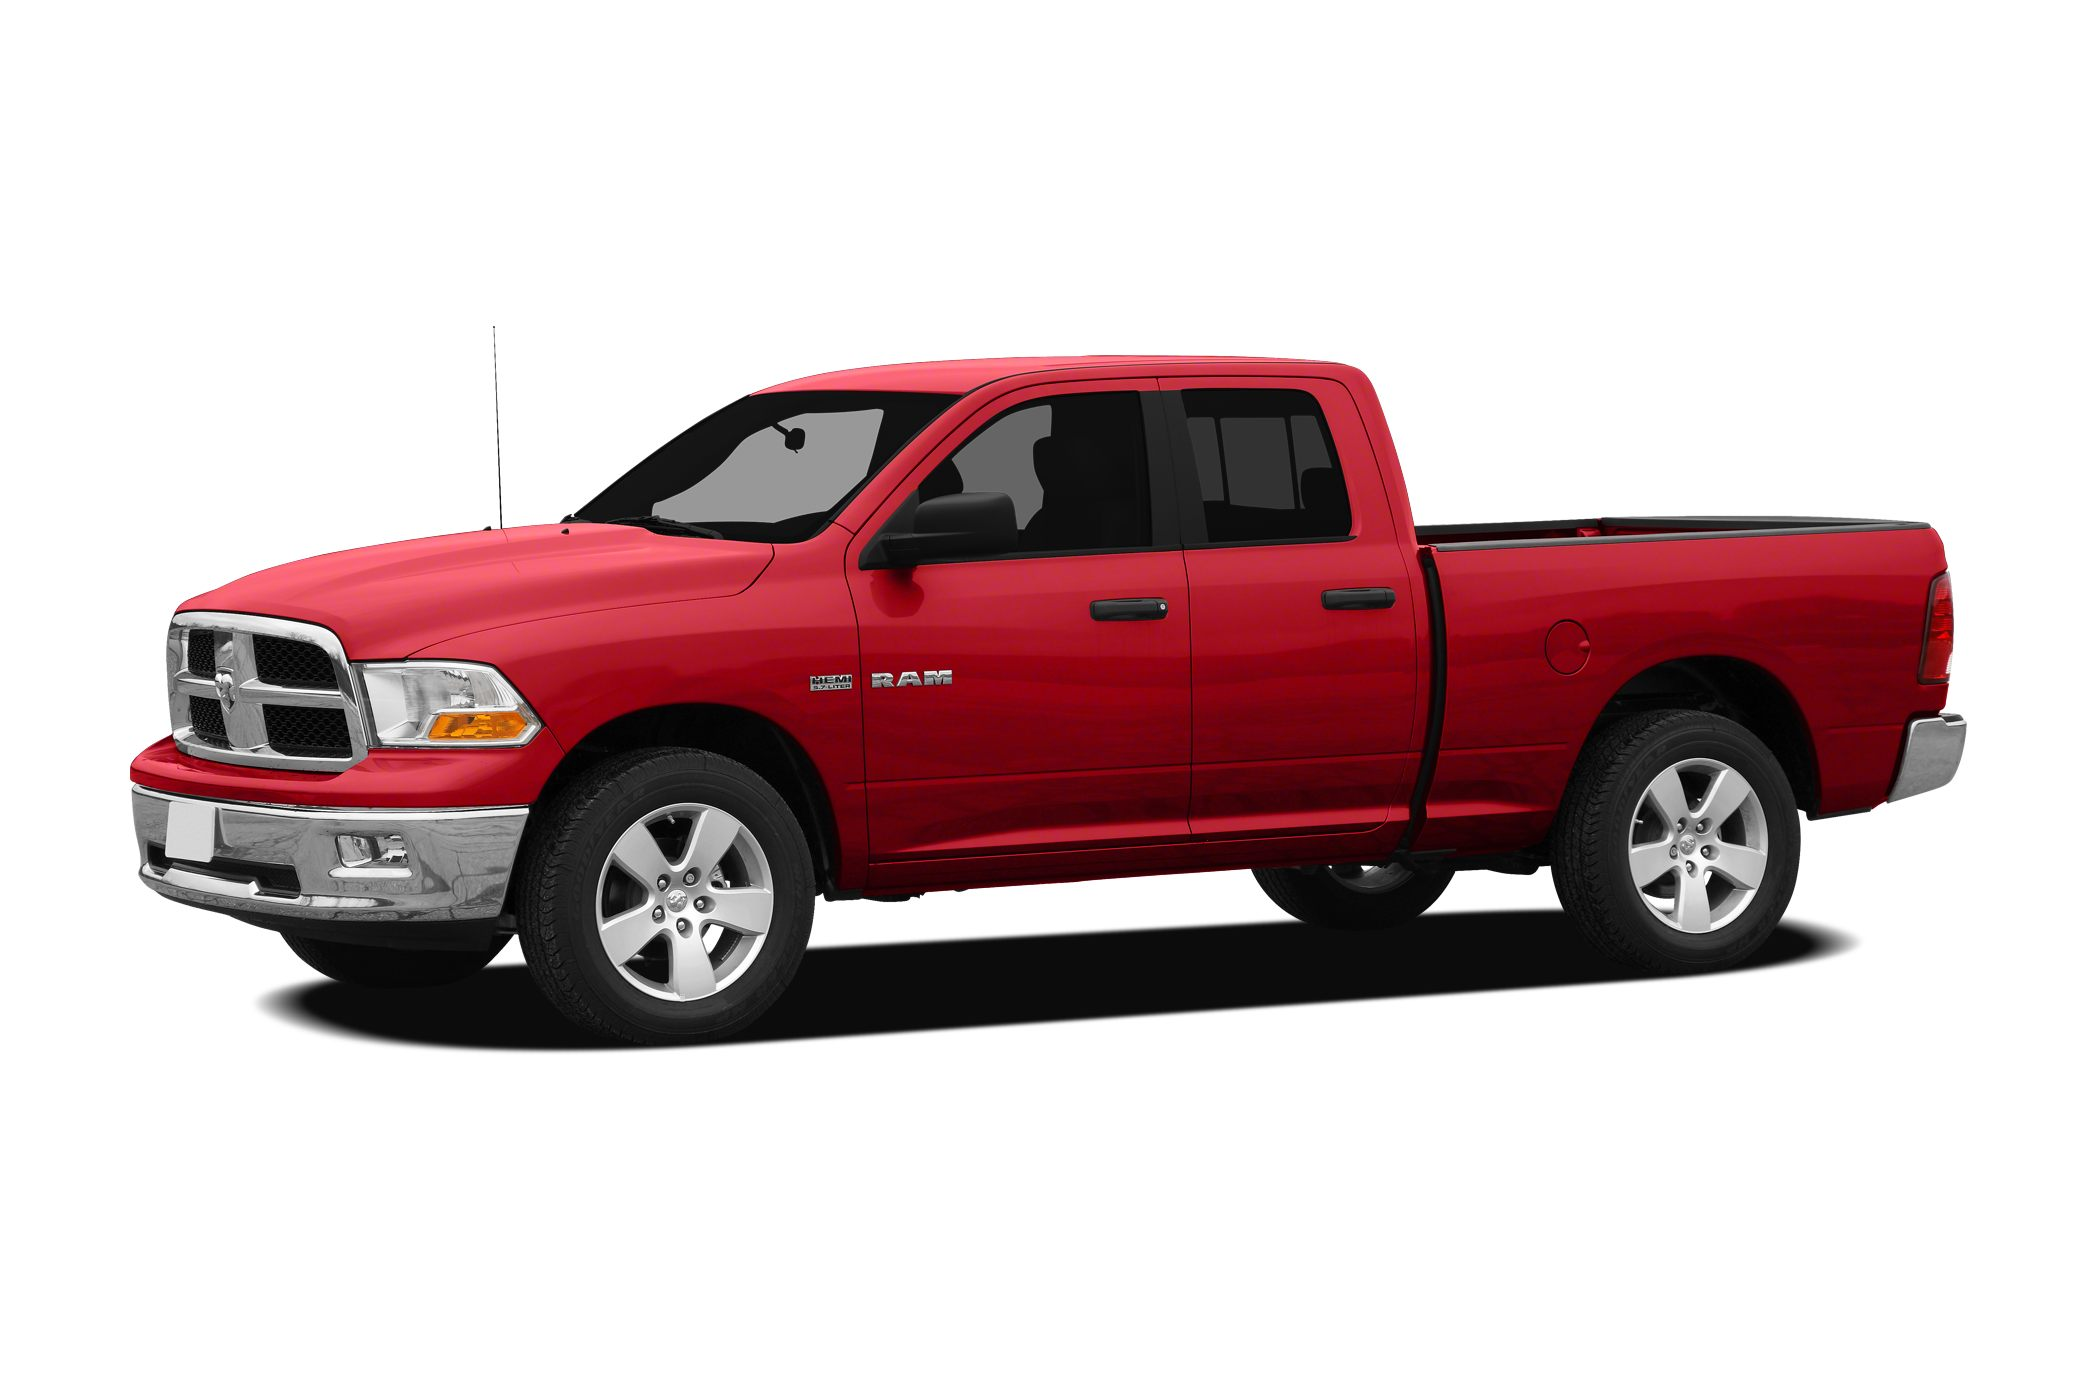 2011 Dodge Ram 1500 SLT WE OFFER FREE LIFETIME INSPECTION Miles 76222Color Red Stock P1464 V